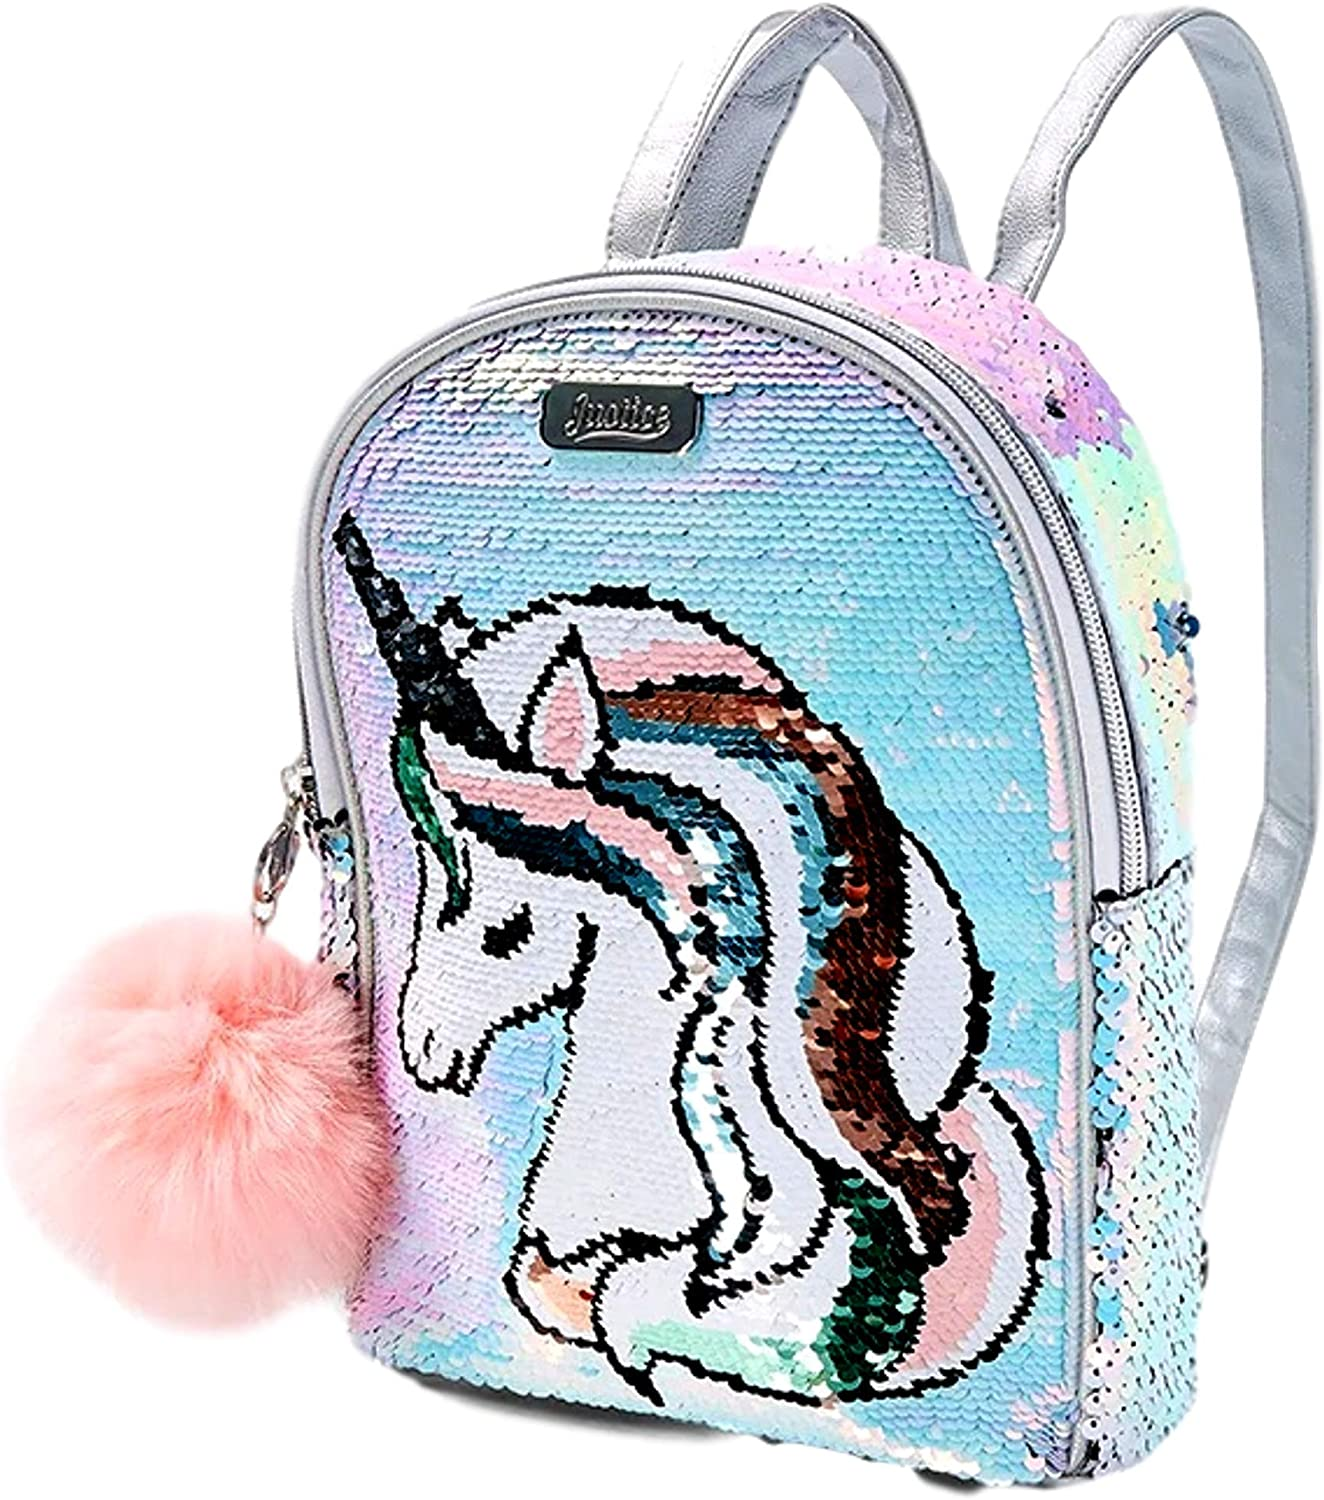 Justice Mini Backpack for Girls - Unicorn Small Backpack with Flip Sequin and Adjustable Straps - Cute Backpack Purse that Holds Wallet, Phone, Charger, Makeup Accessories, Camera, Water Bottle